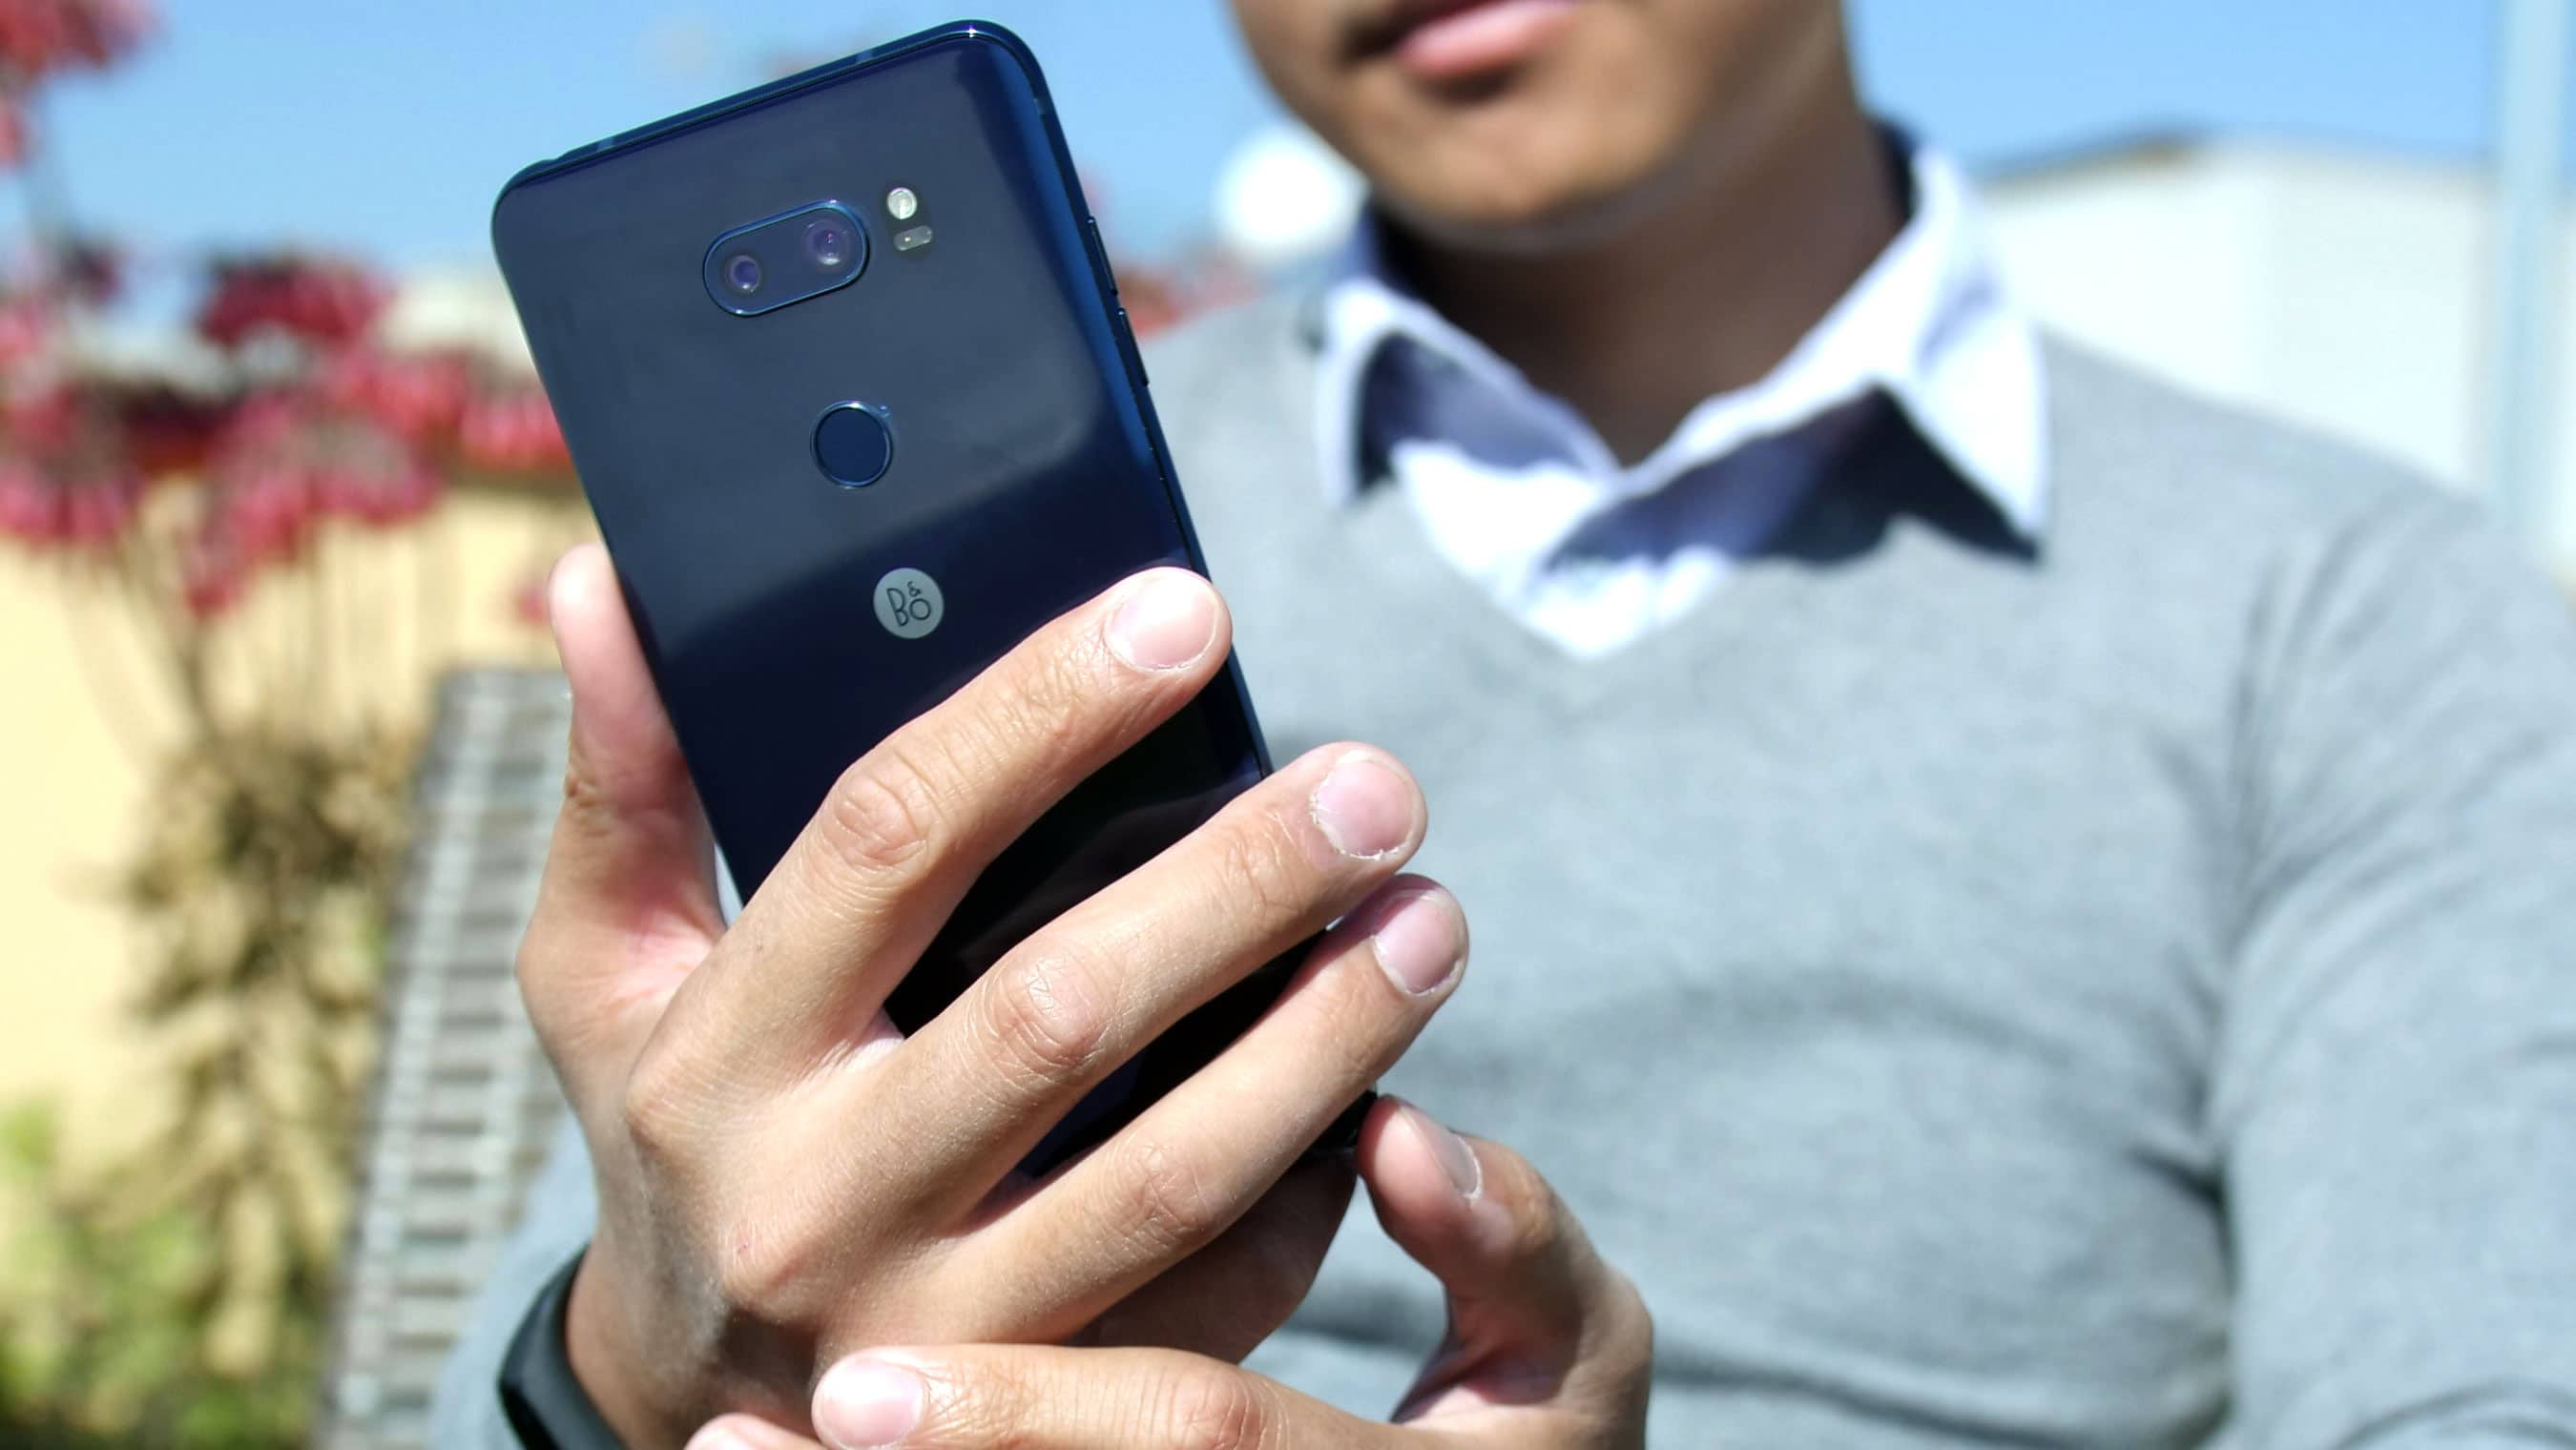 Lg Announces Vision Ai Camera For New 2018 V30 Smartphone: LG Announces V30S ThinQ With Artificial Intelligence Built